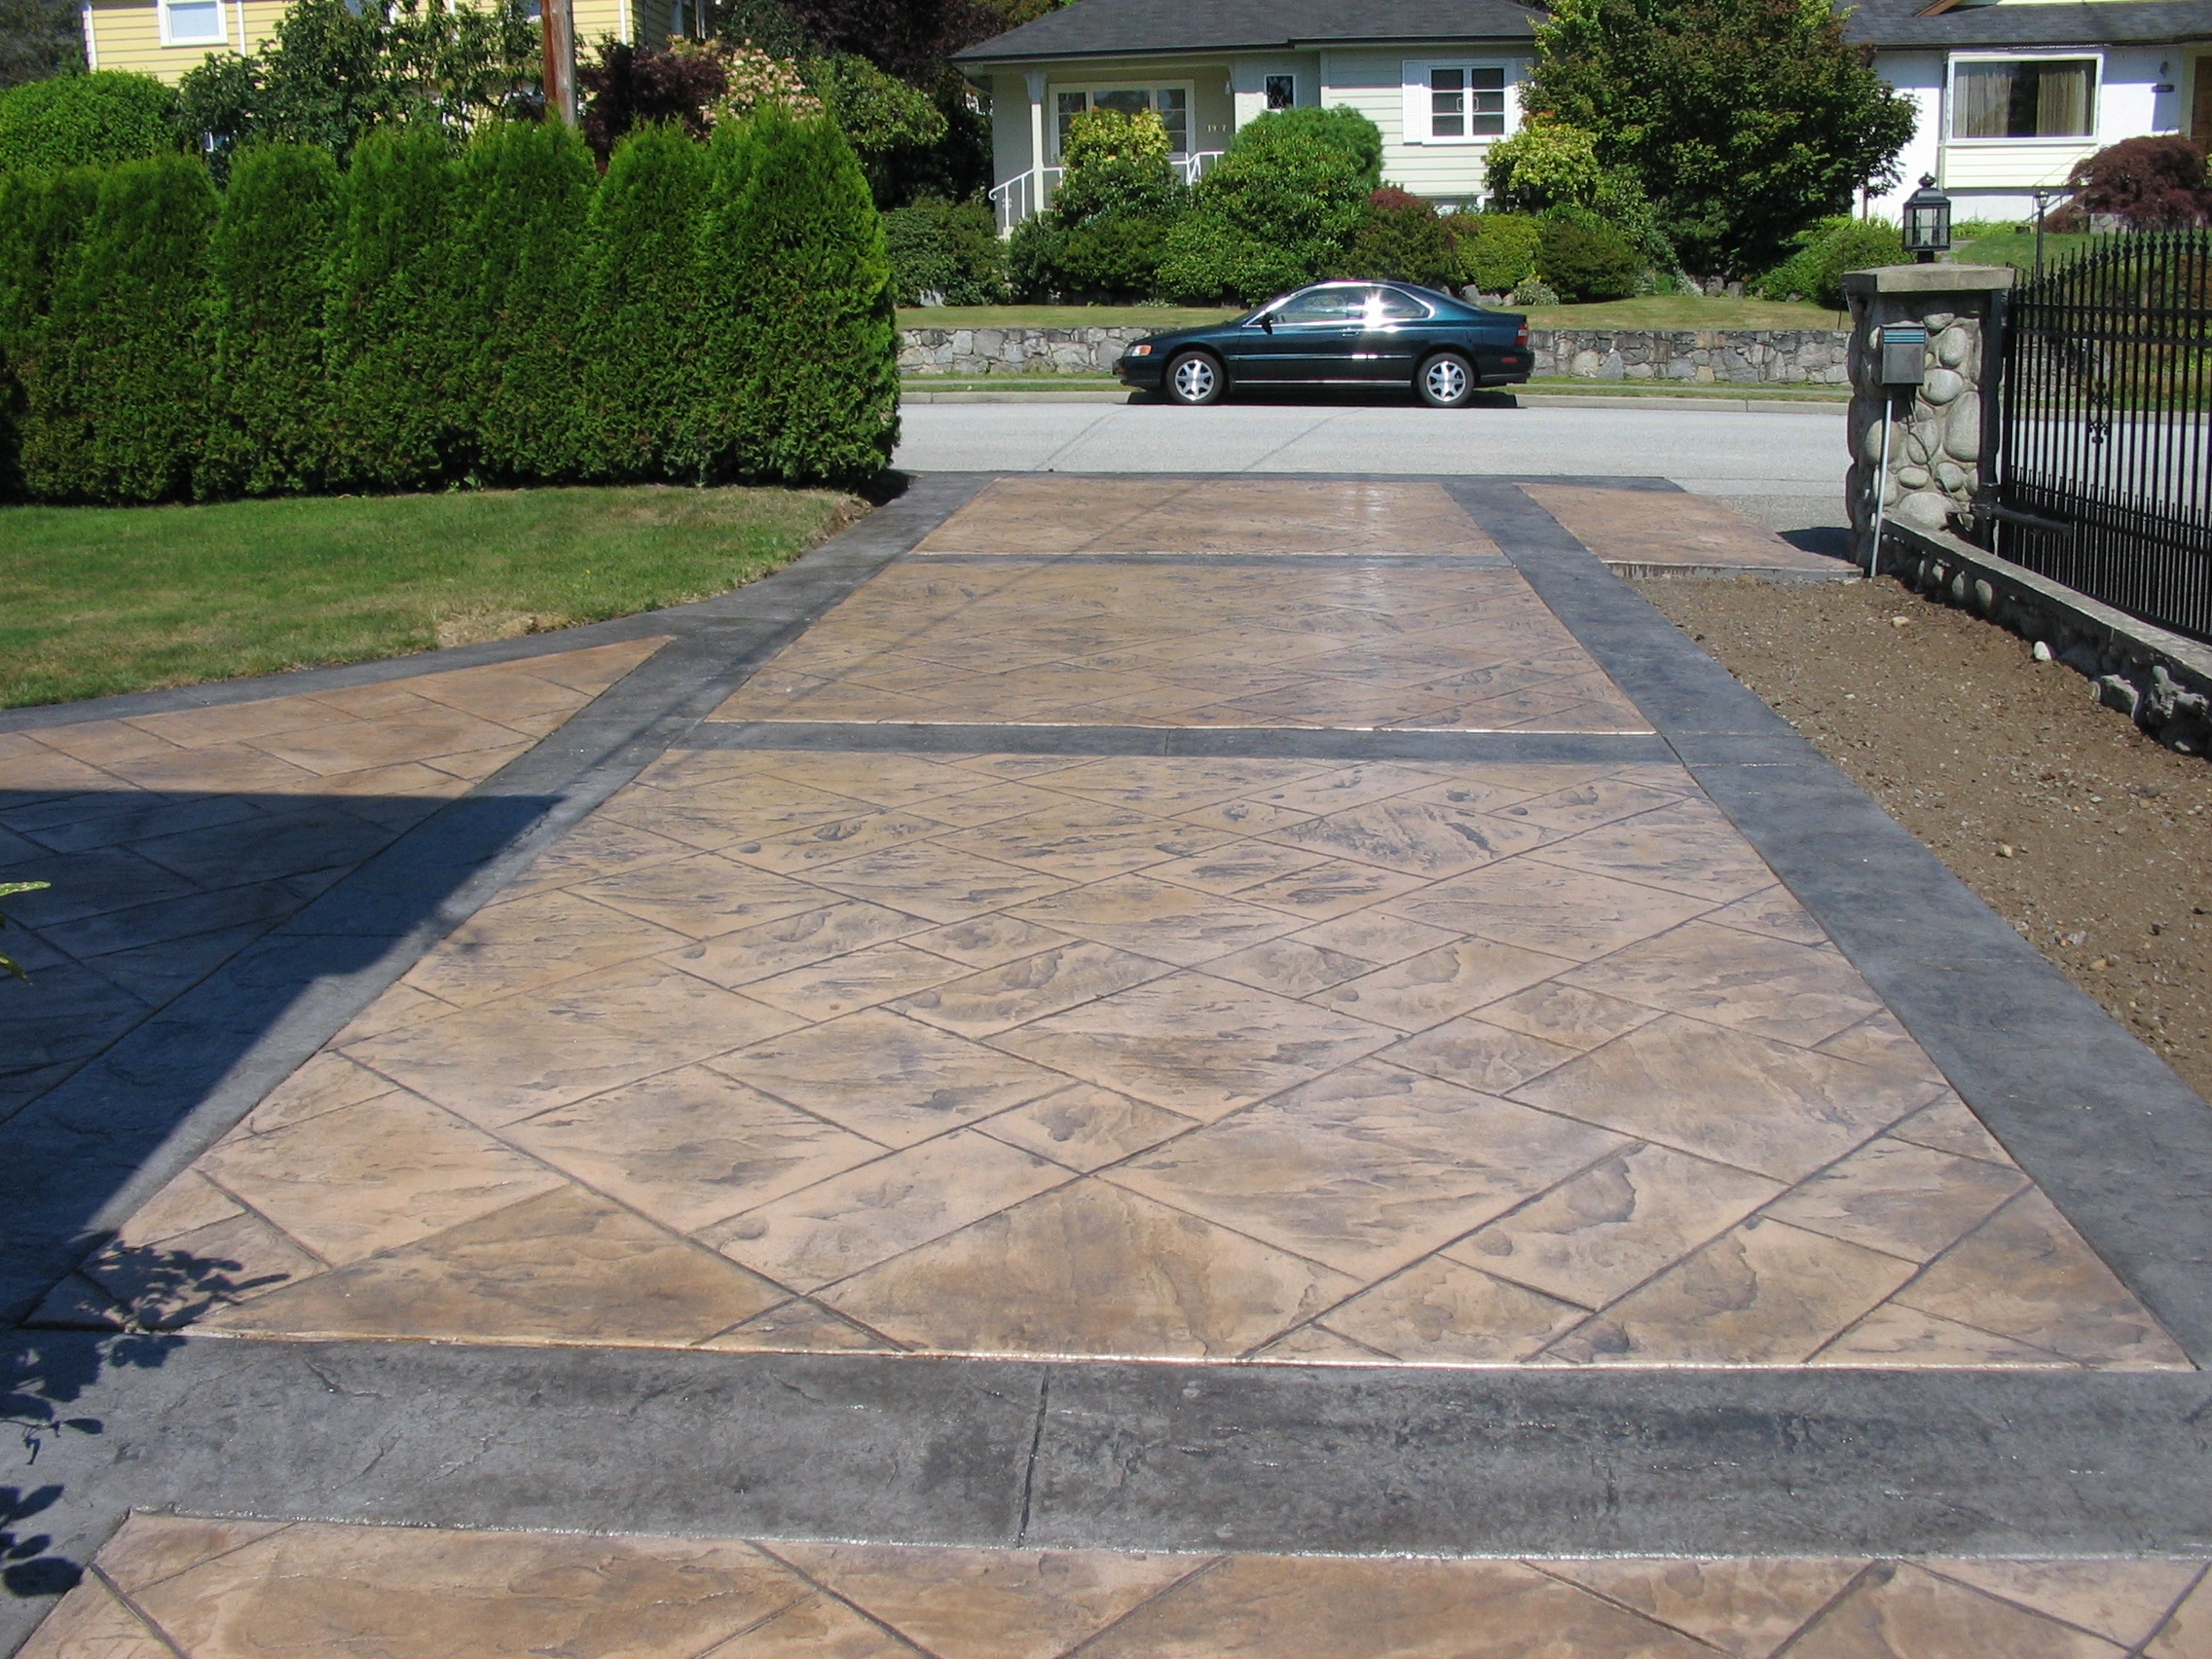 Decorative concrete driveways harmon concrete brea for New concrete driveway